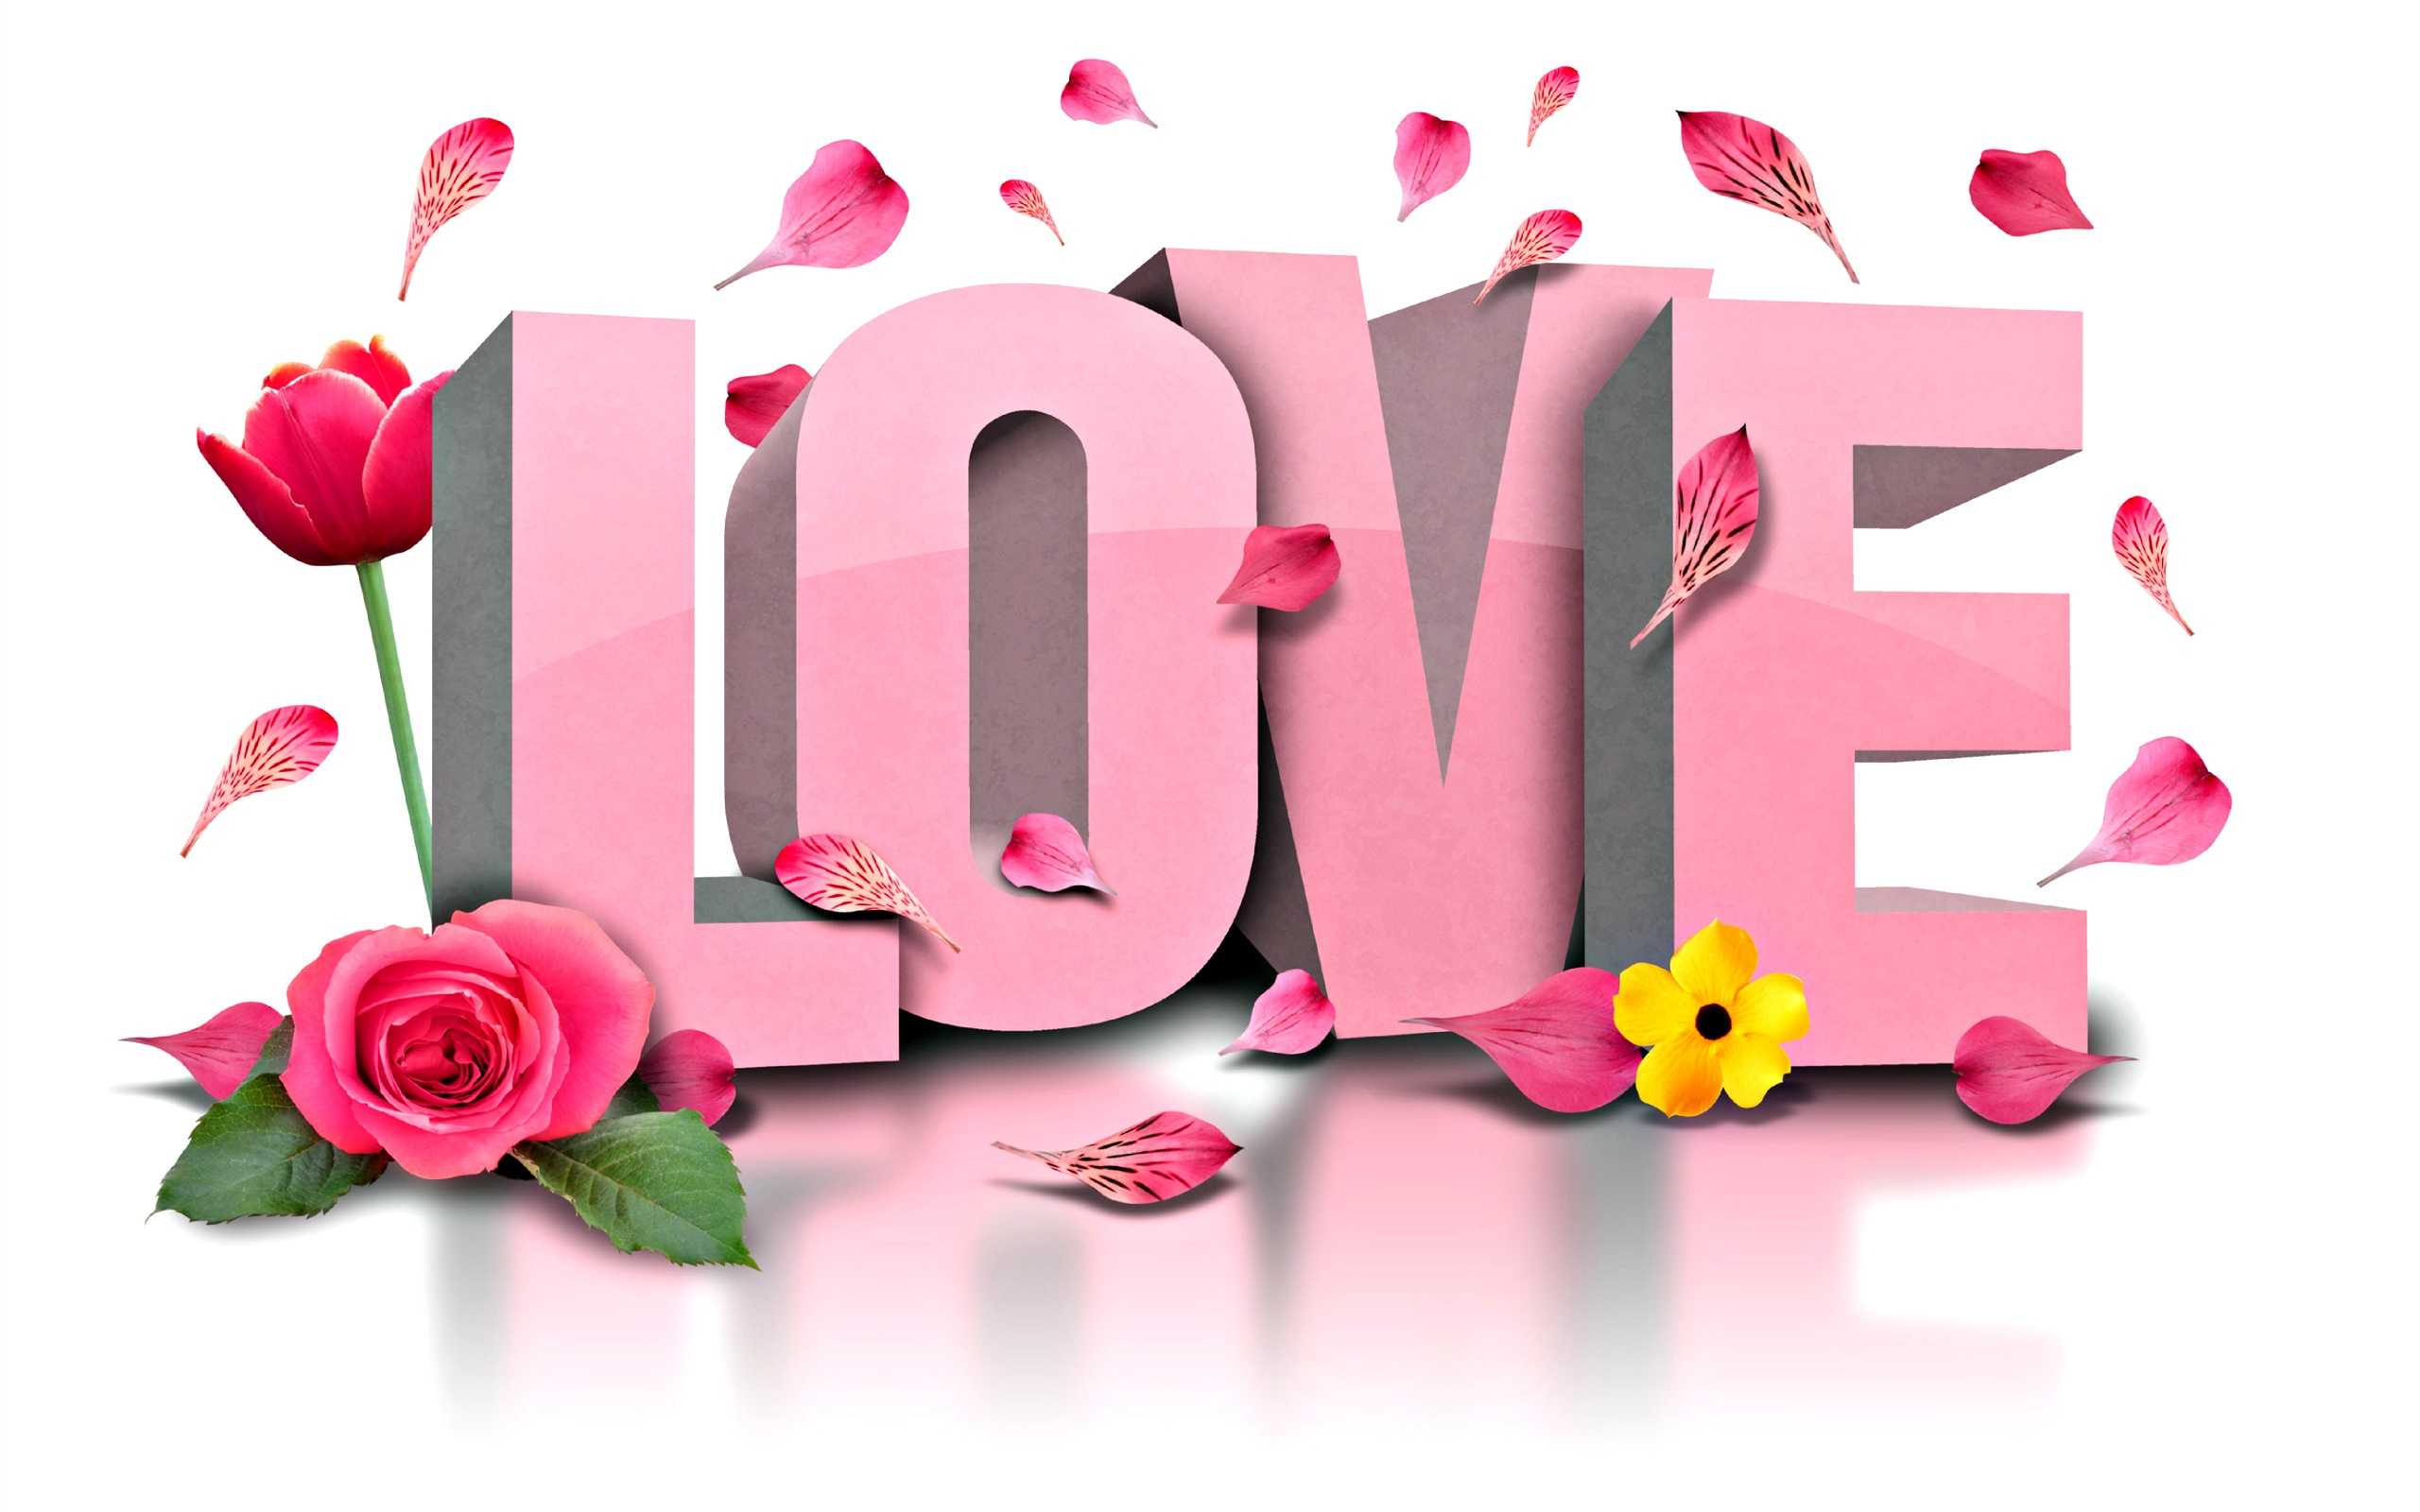 Love Flower Wallpaper Images : Love Flowers Wallpapers - 2560x1600 - 577941